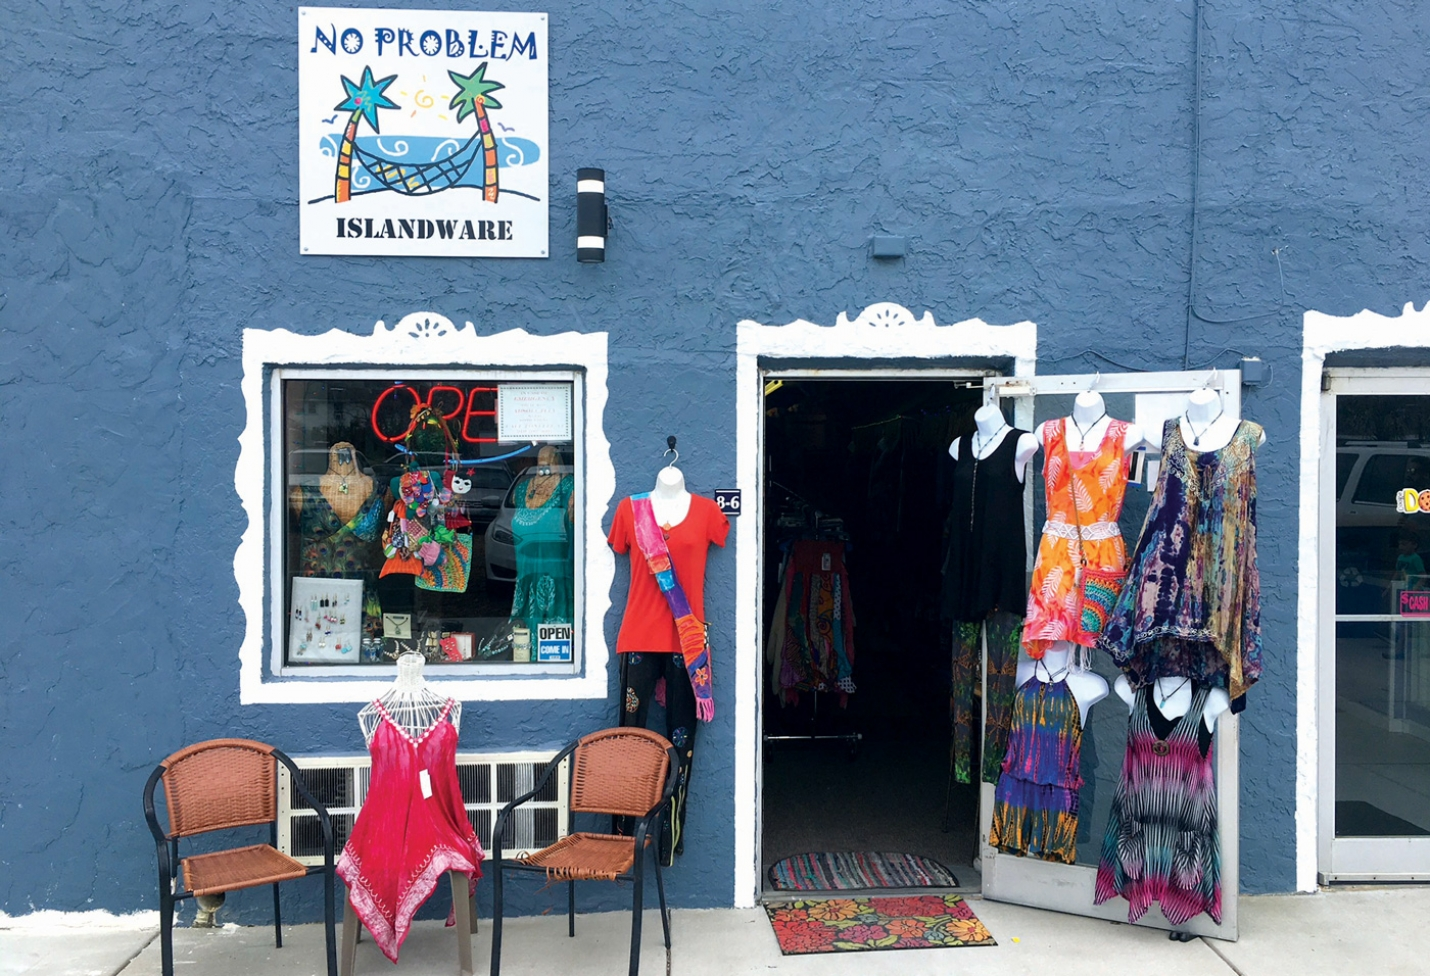 No Problem Islandware is located on the new Carolina Beach Boardwalk near the gazebo.  They are open seven days a week and can be reached by calling (910)458-5818.